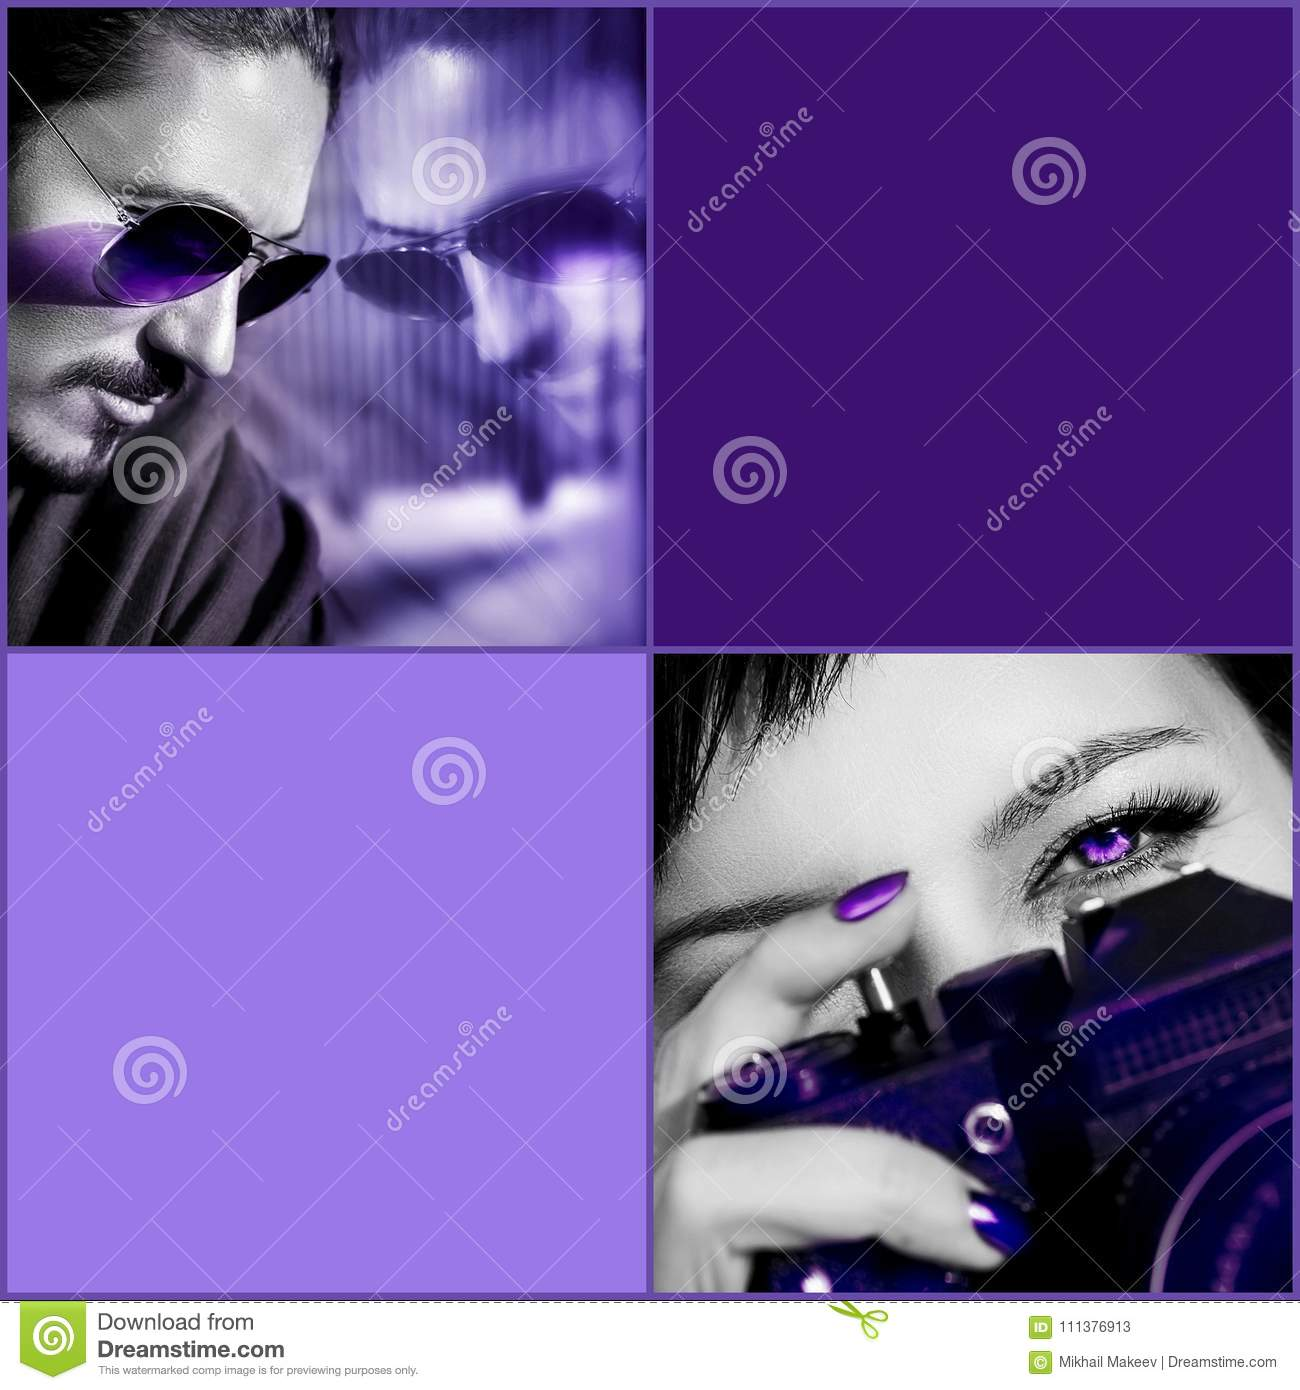 Ultraviolet composite image. Man in sunglasses, woman with camera against purple background. Composite image with black and white.